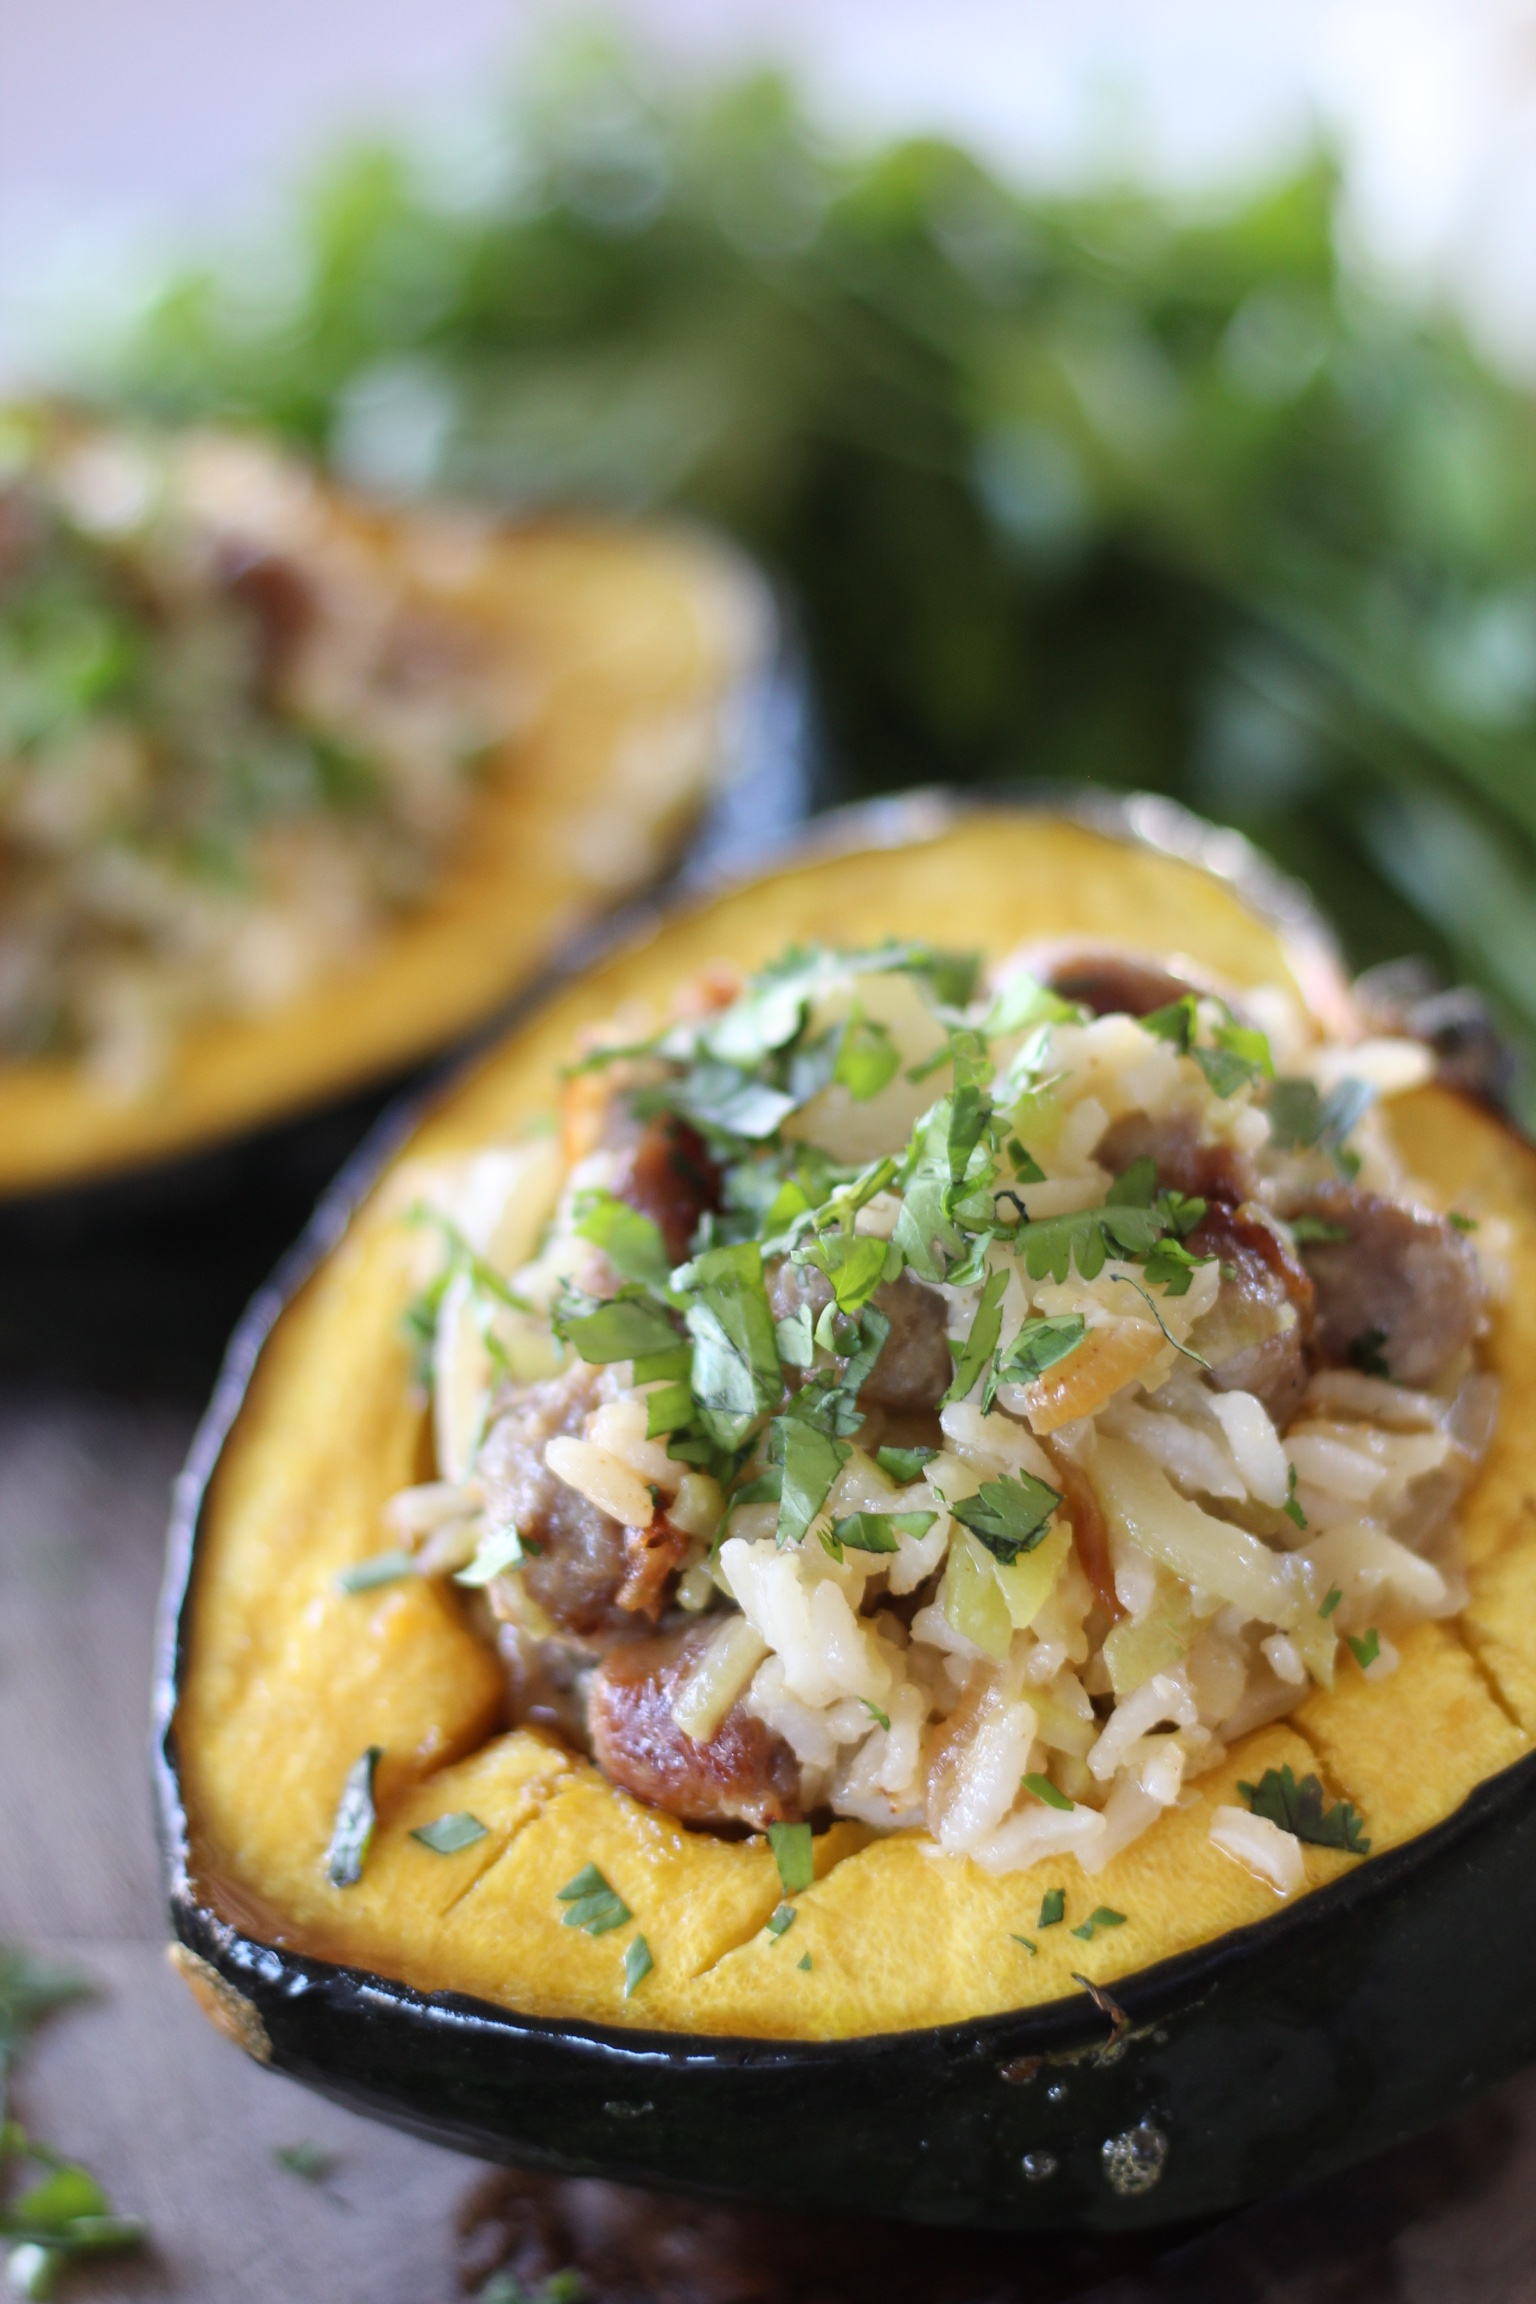 How to serve acorn squash